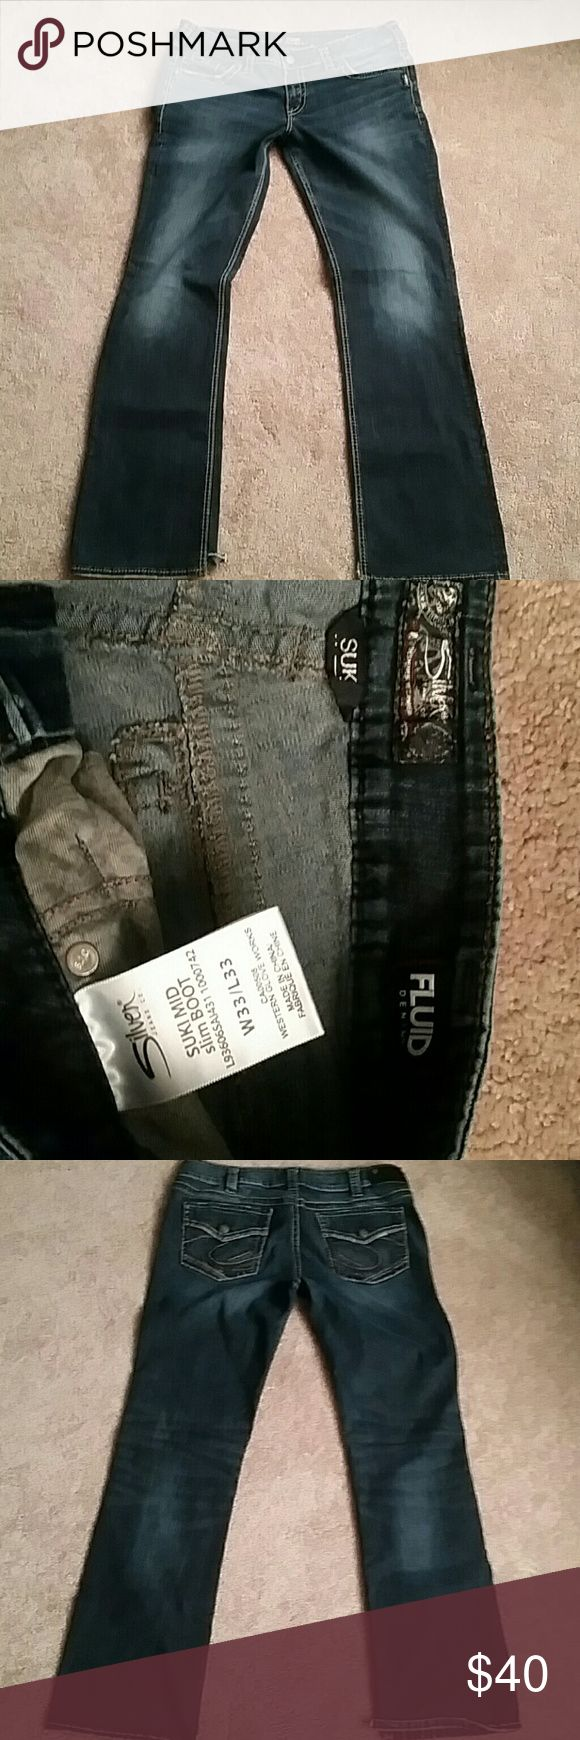 Women's Silver Suki Jean's 33x33 Dark distressed,  flap back pockets, mid rise, slim boot, excellent condition other than 2 tiny inside pant leg slots I made to cover the tops of my tennis shoes. Silver Jeans Jeans Boot Cut